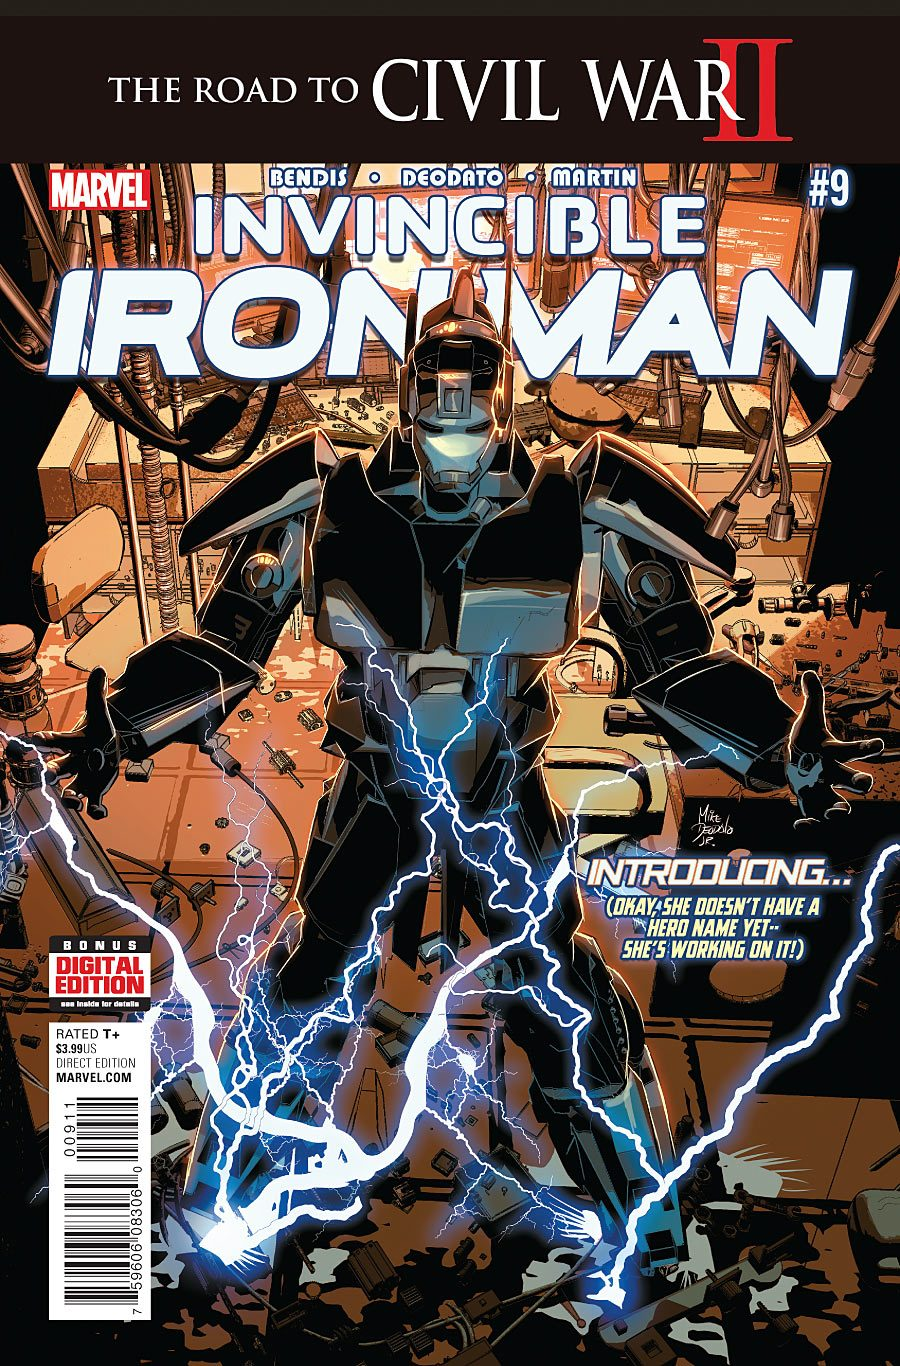 Invincible Iron Man #9 Review